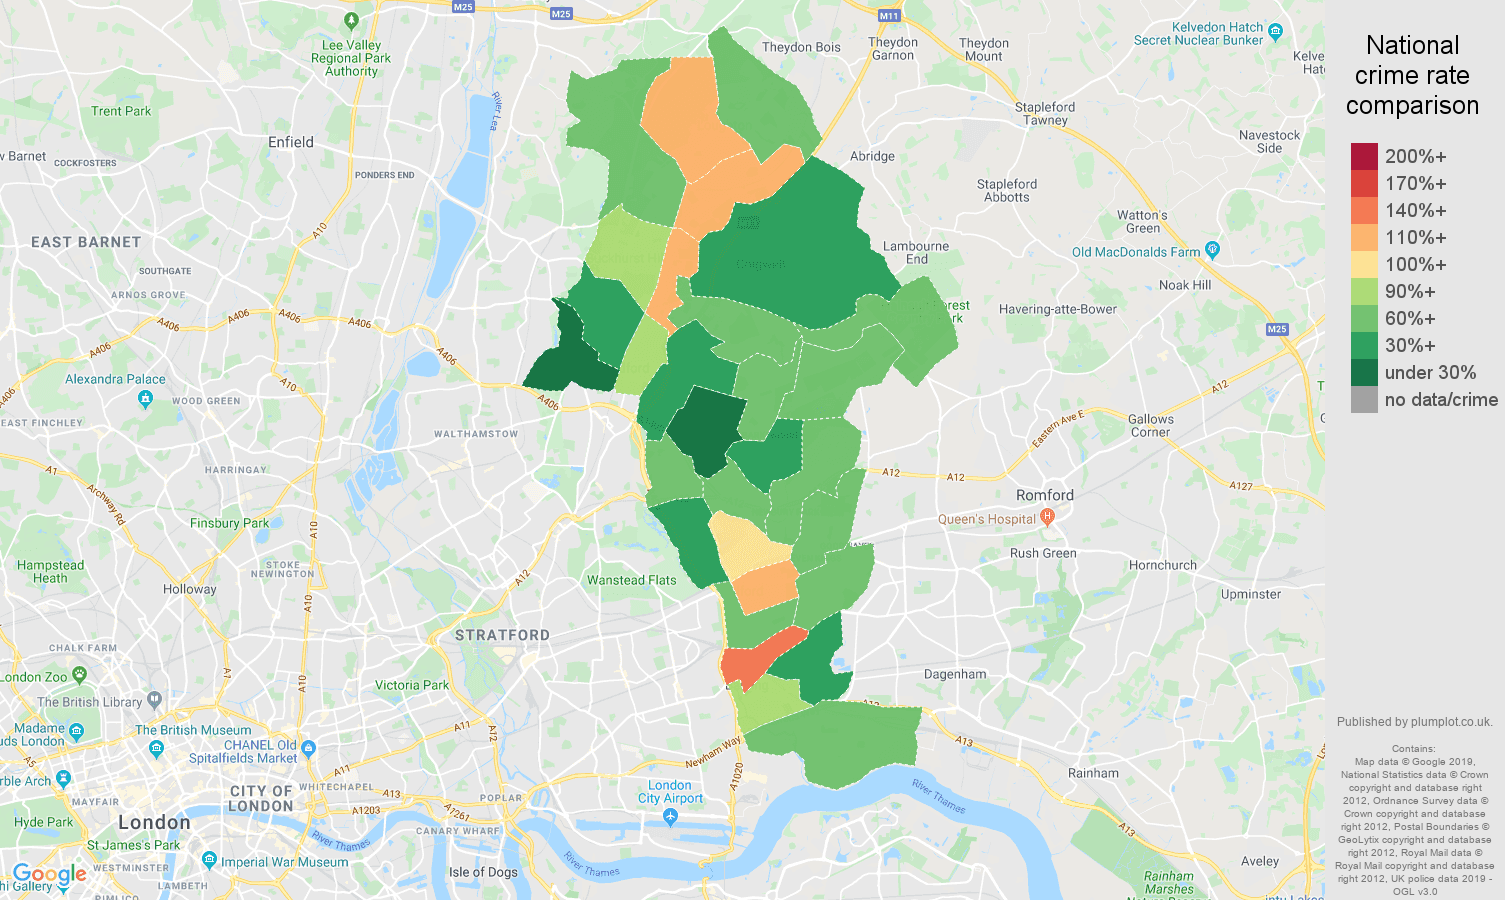 Ilford public order crime rate comparison map